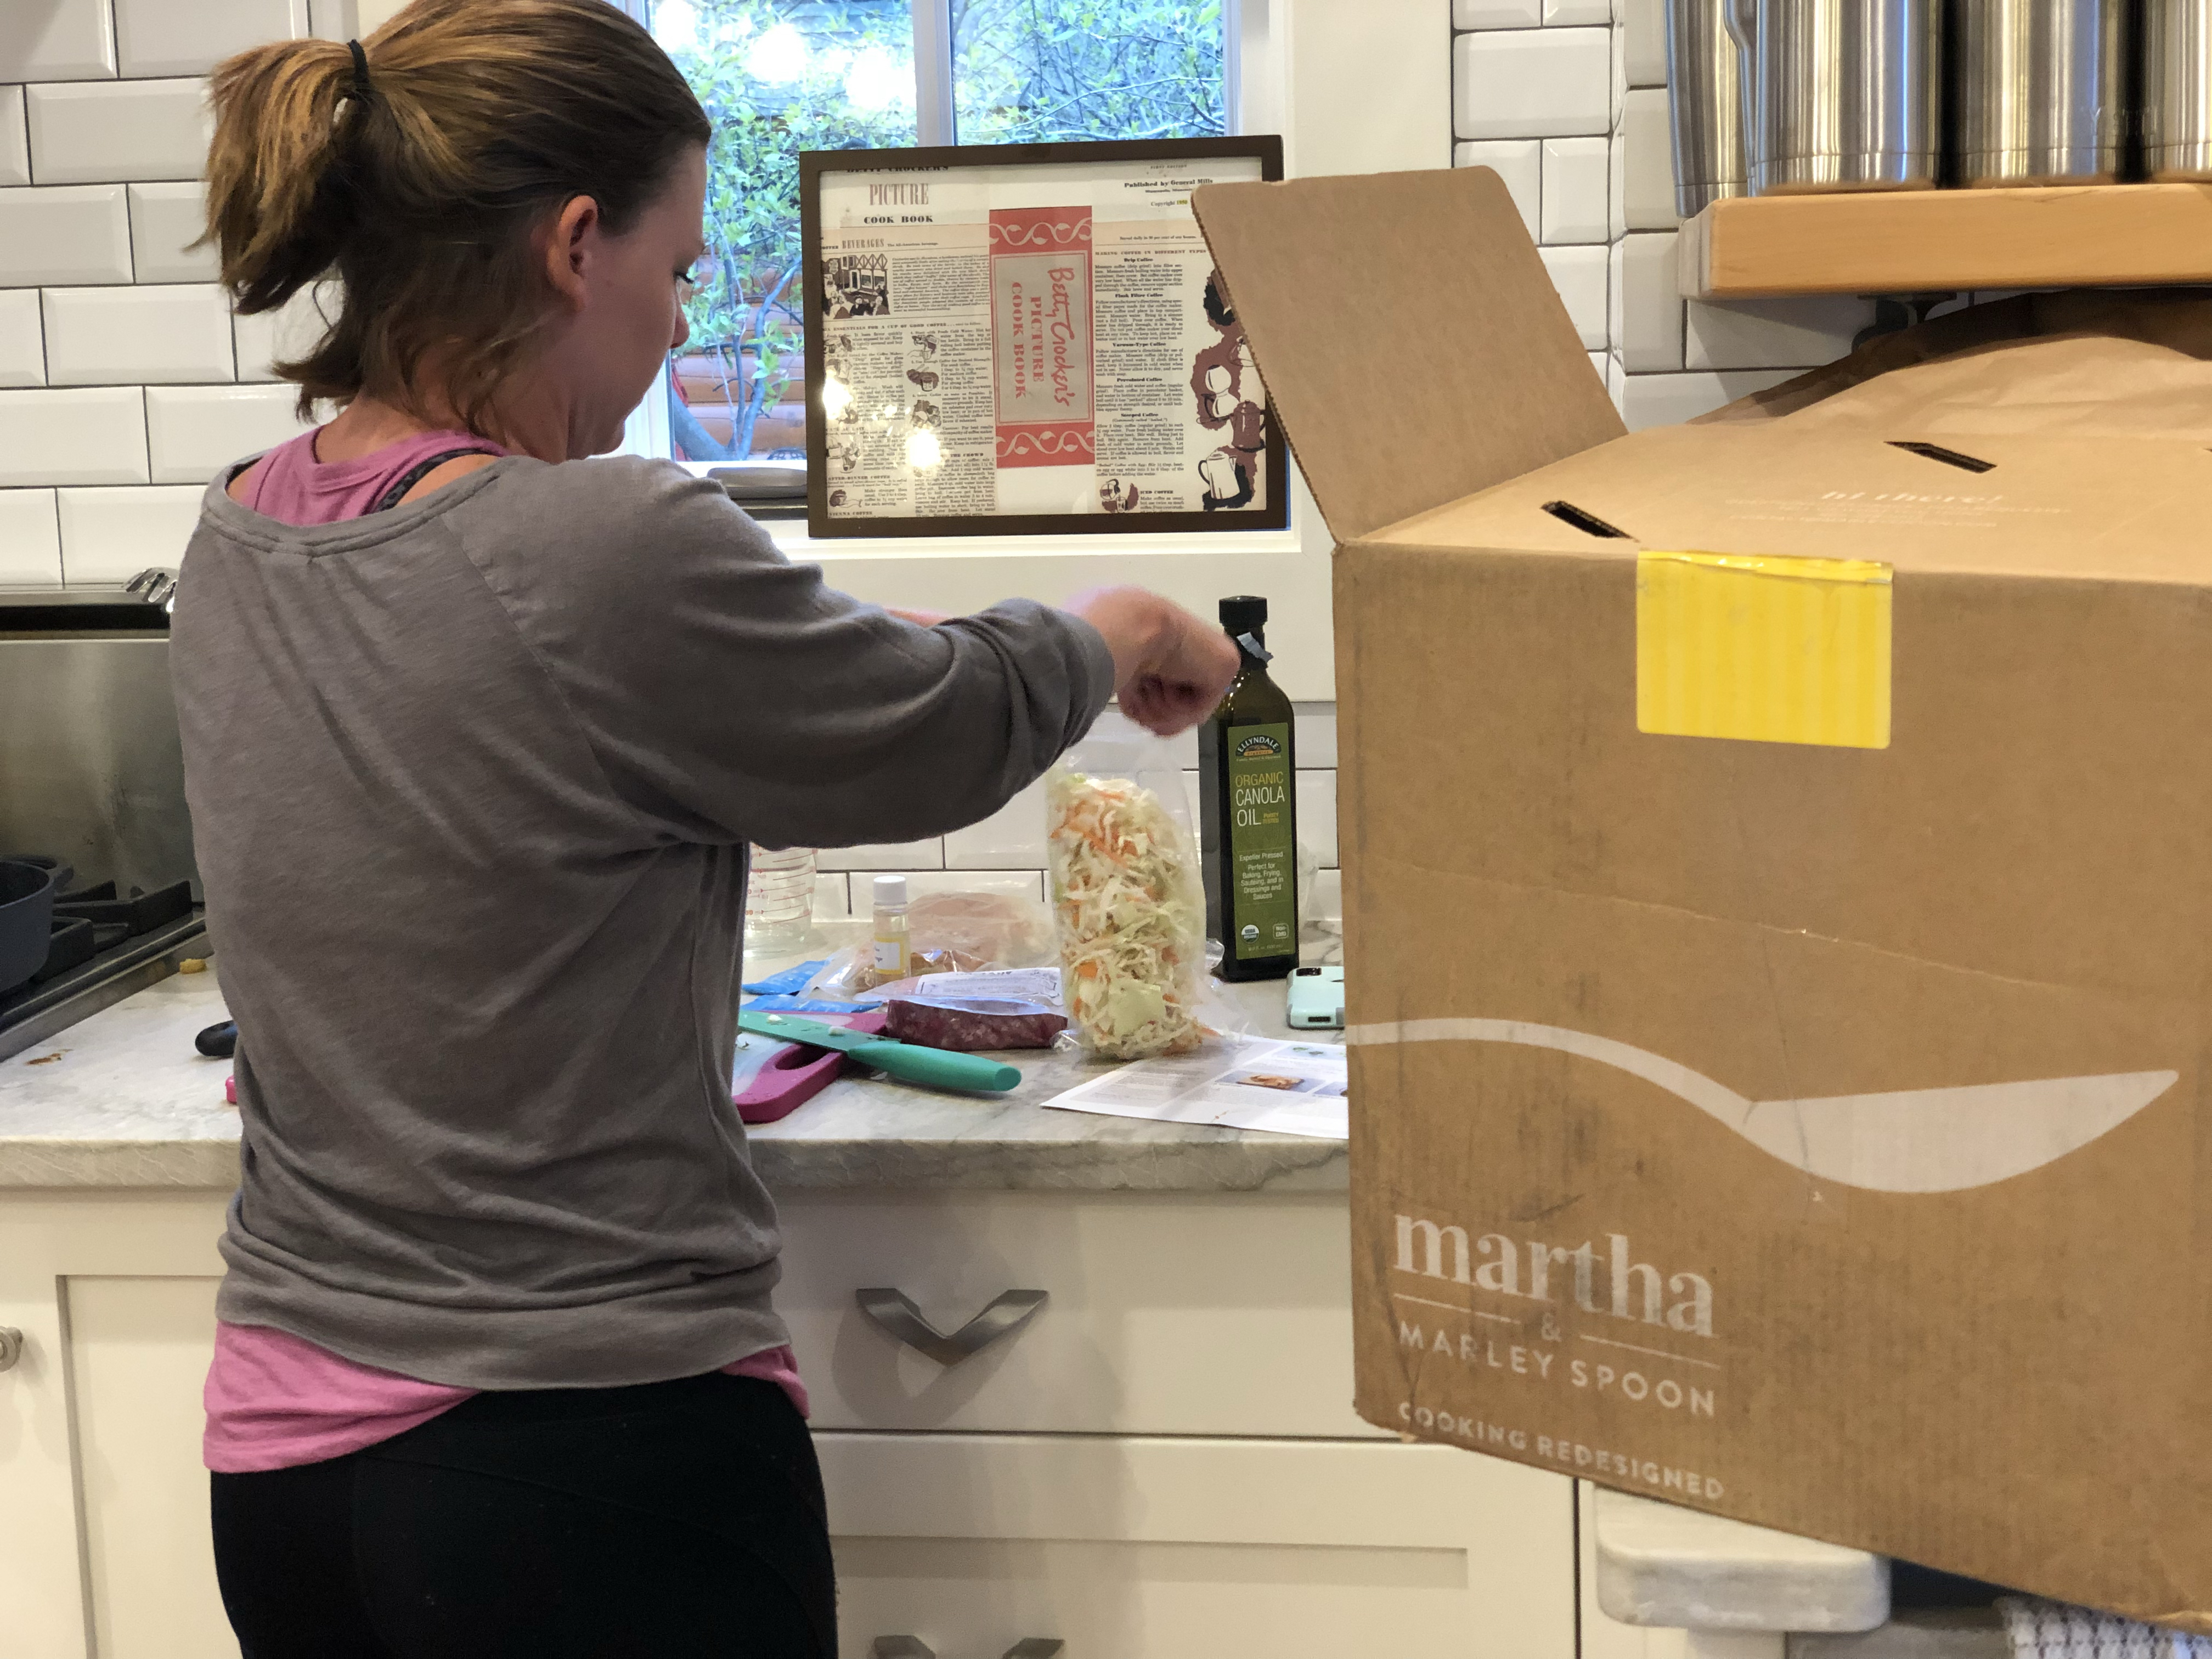 deal martha & marley spoon meals – coleslaw mix in a bag